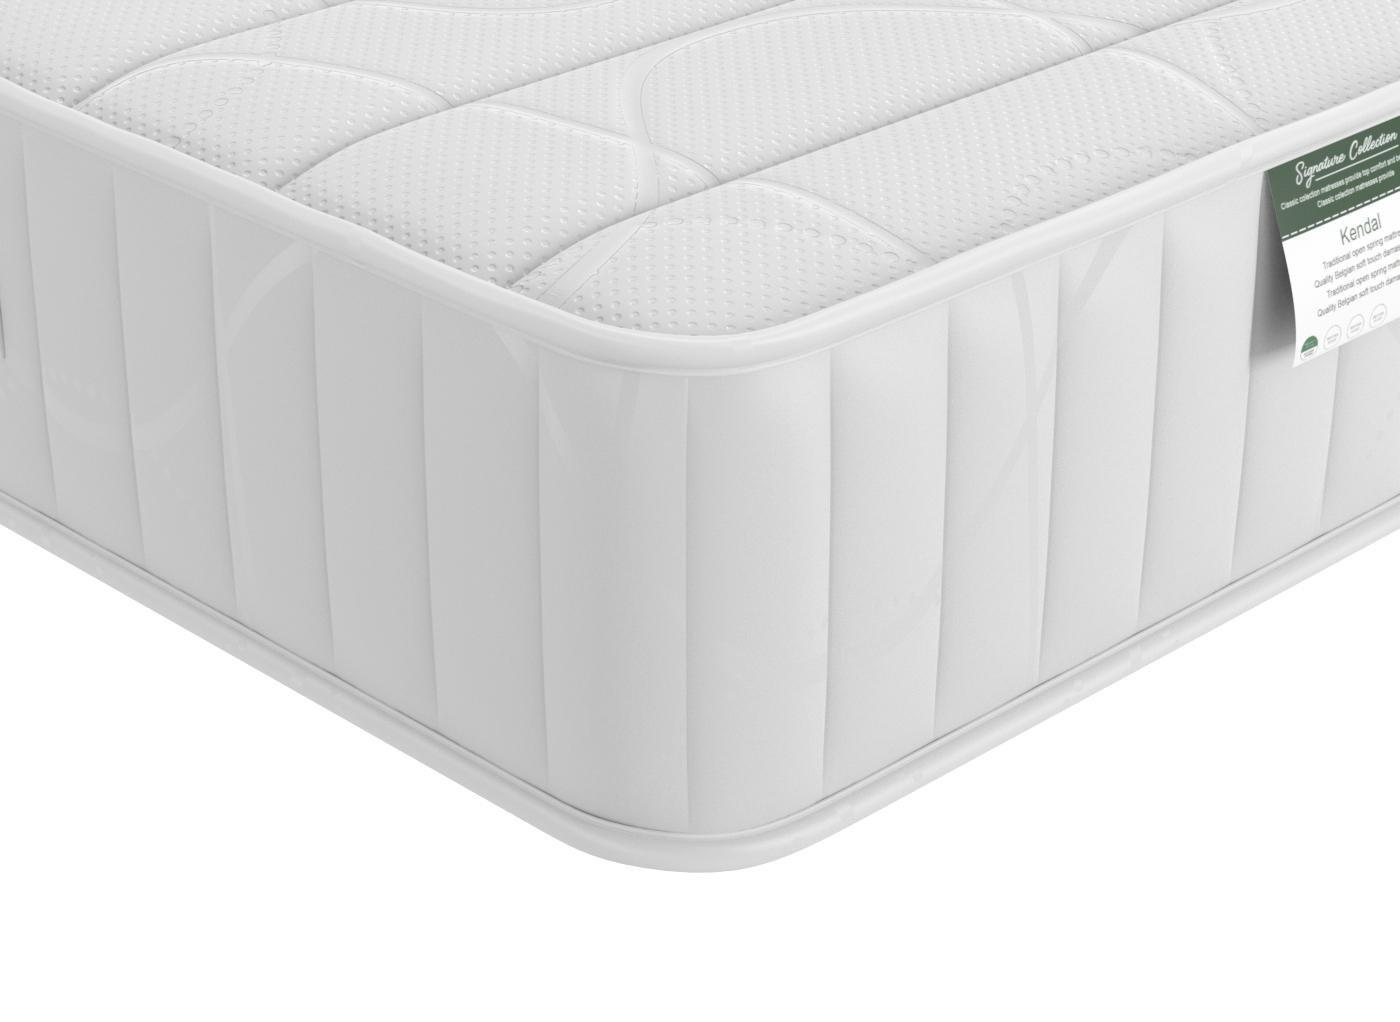 Kendall Pocket Sprung Mattress - Medium